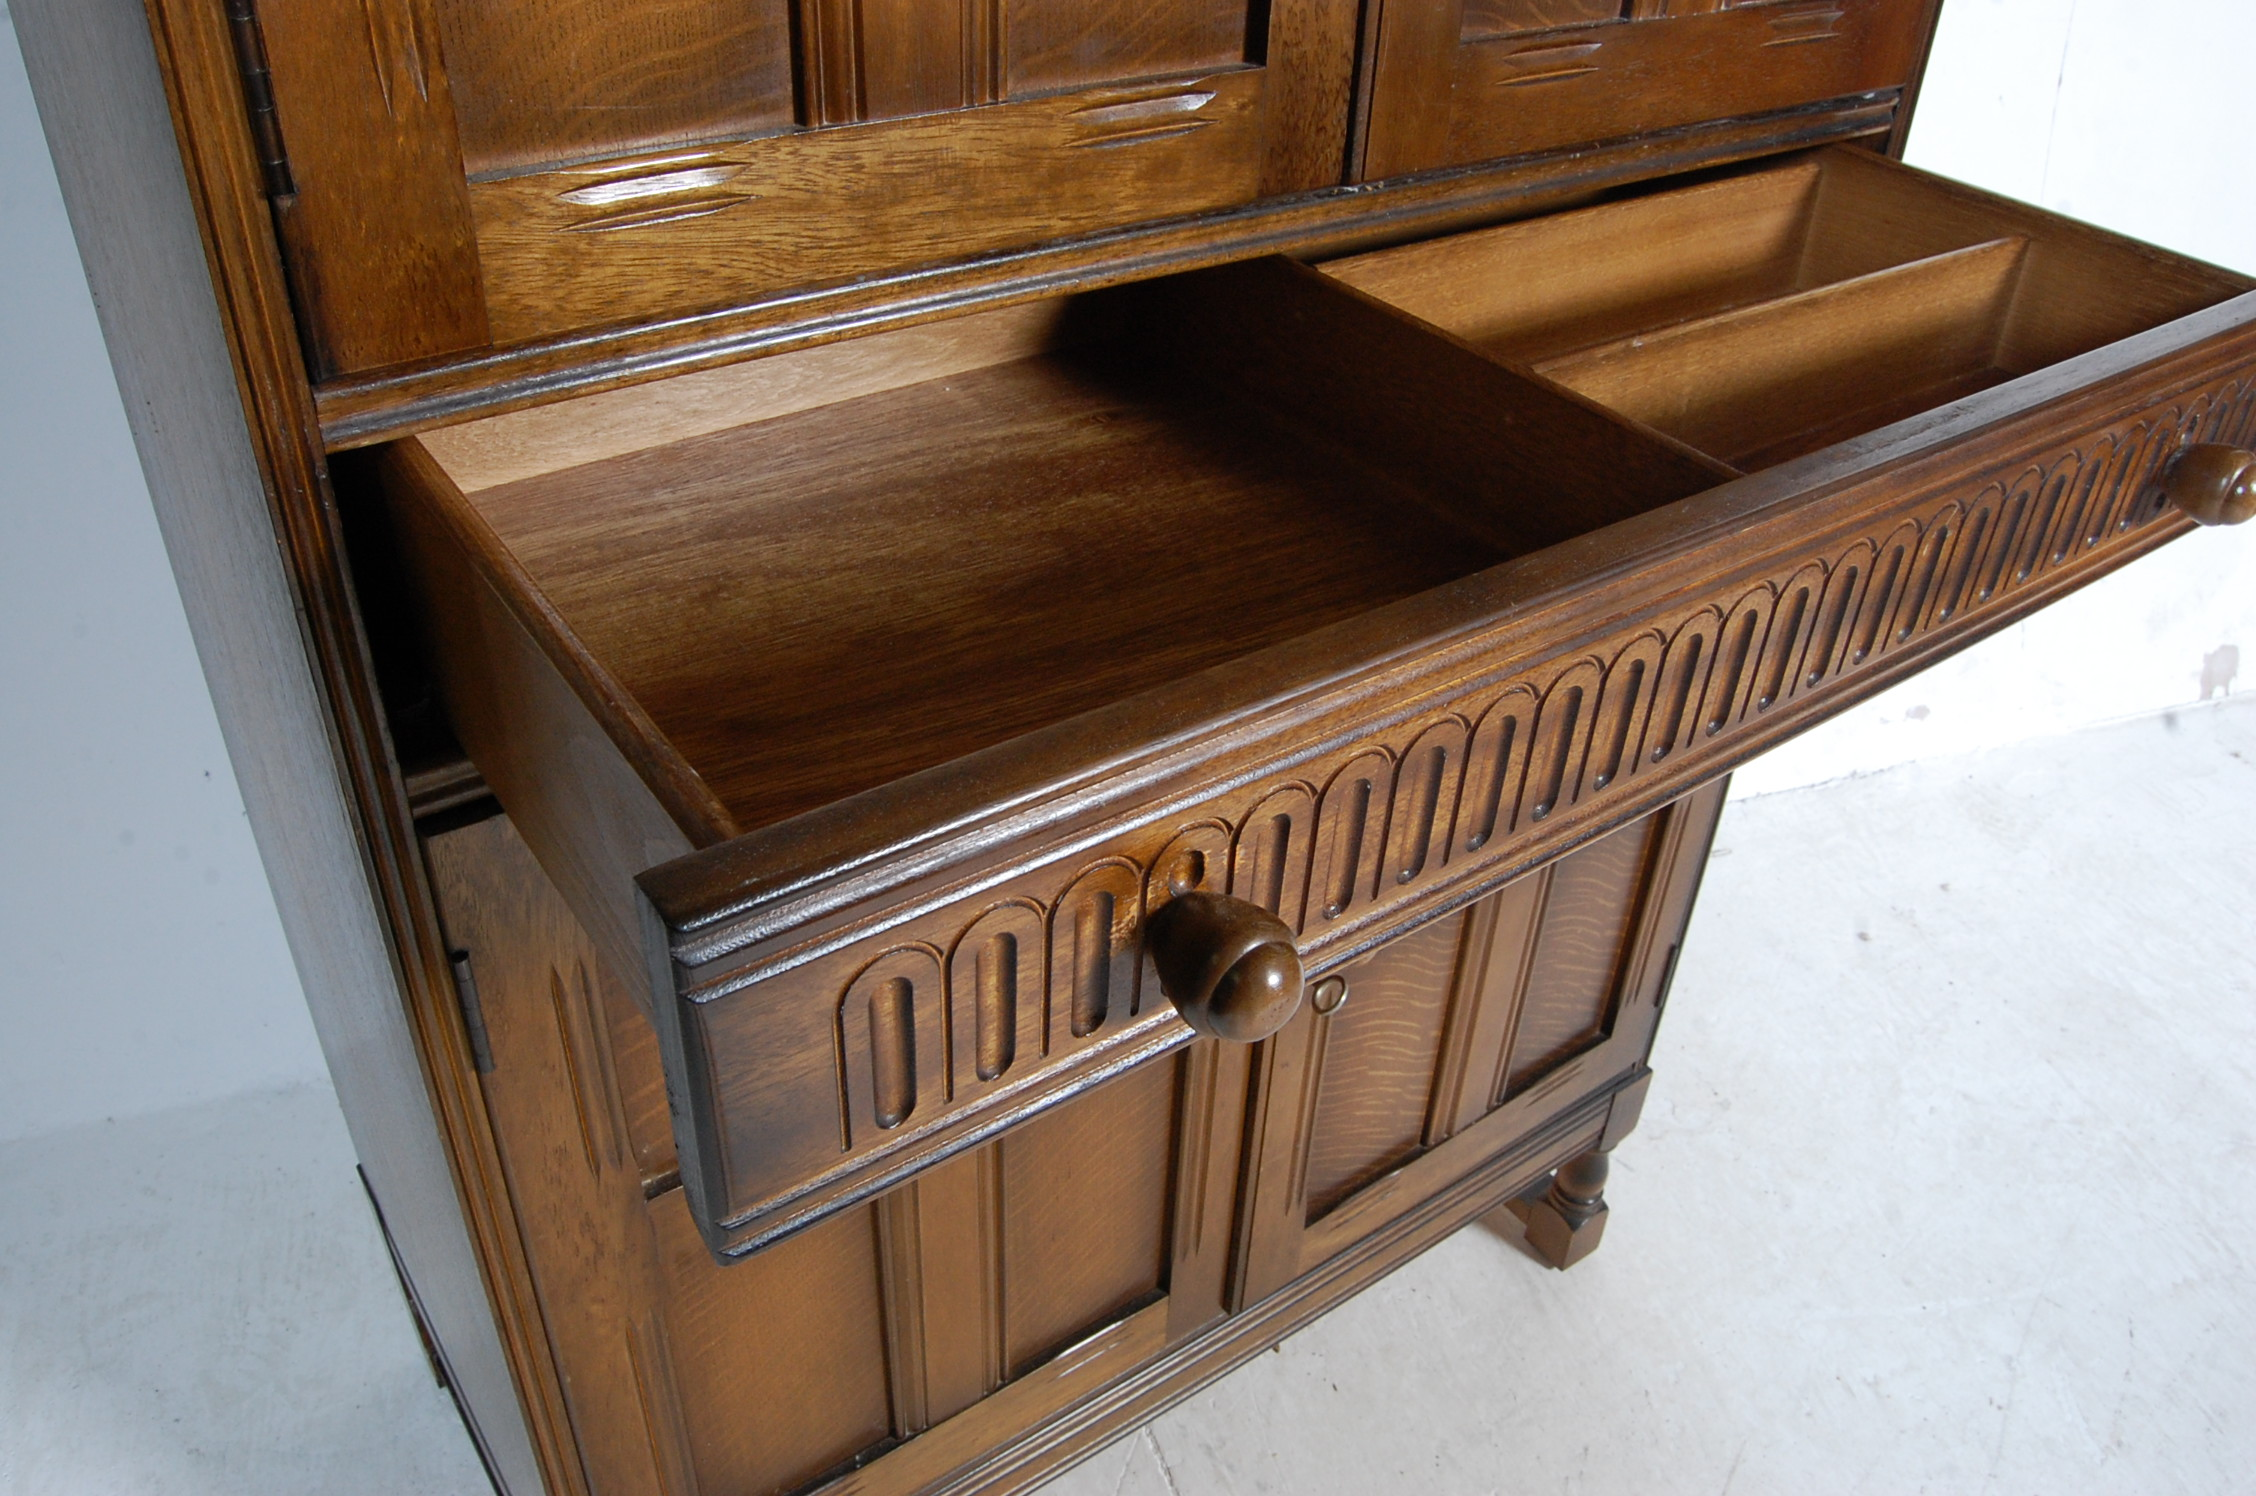 MID CENTURY OAK COCKTAIL CABINET - Image 5 of 6